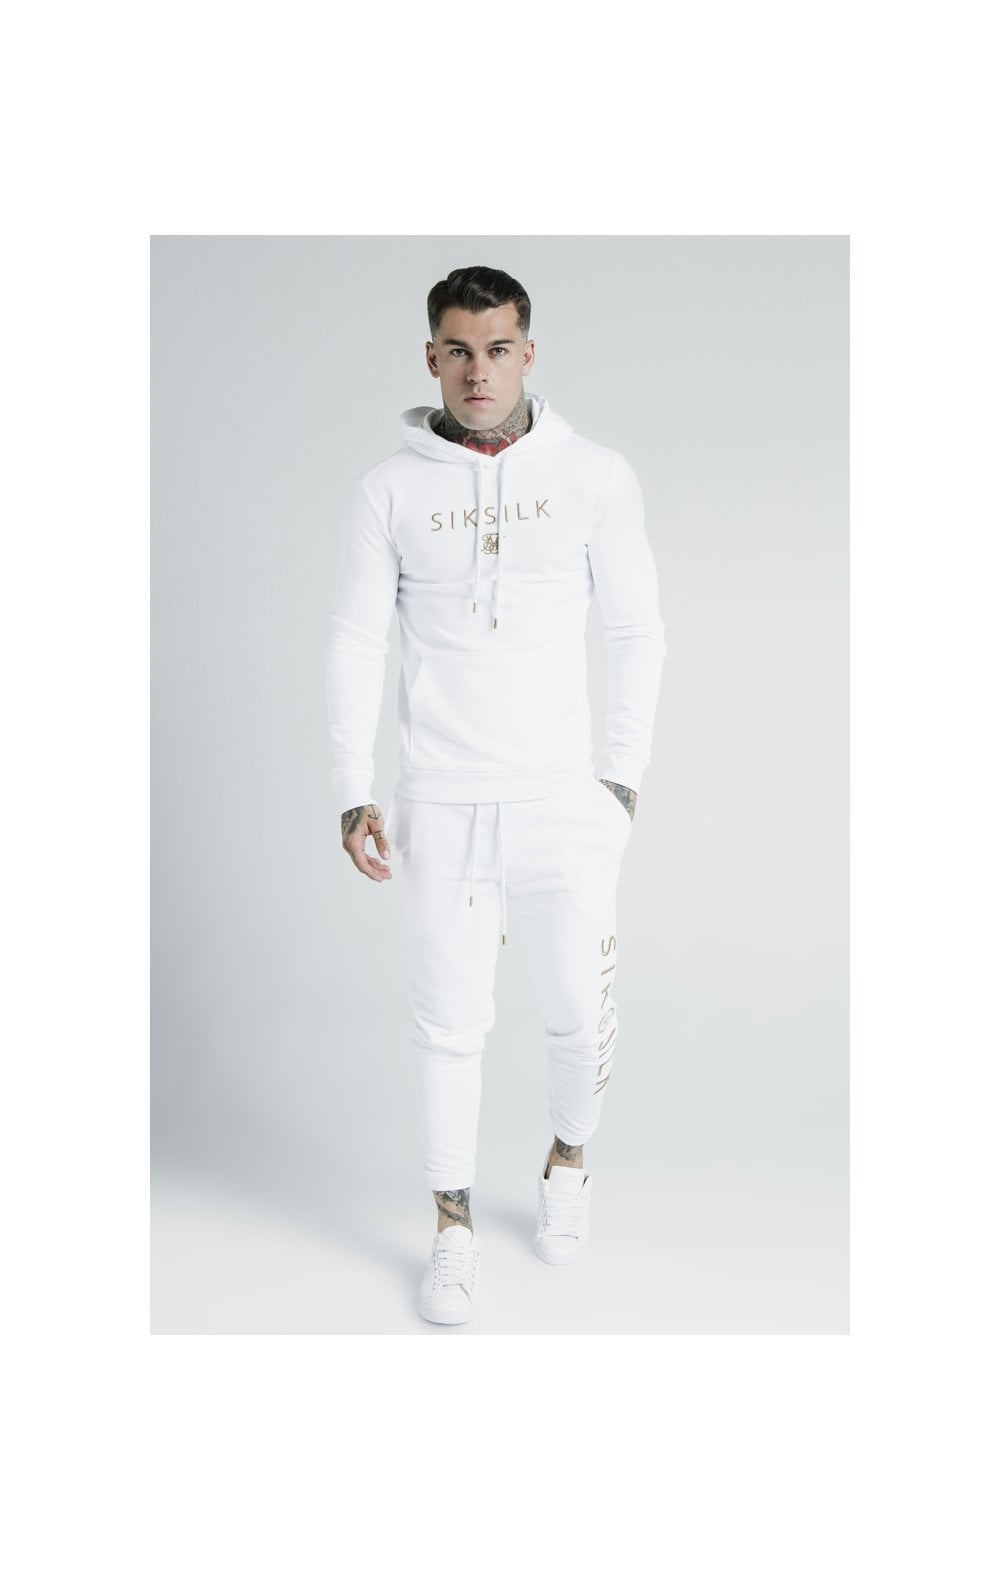 SikSilk x Dani Alves Sweat à Capuche - Blanc (5)